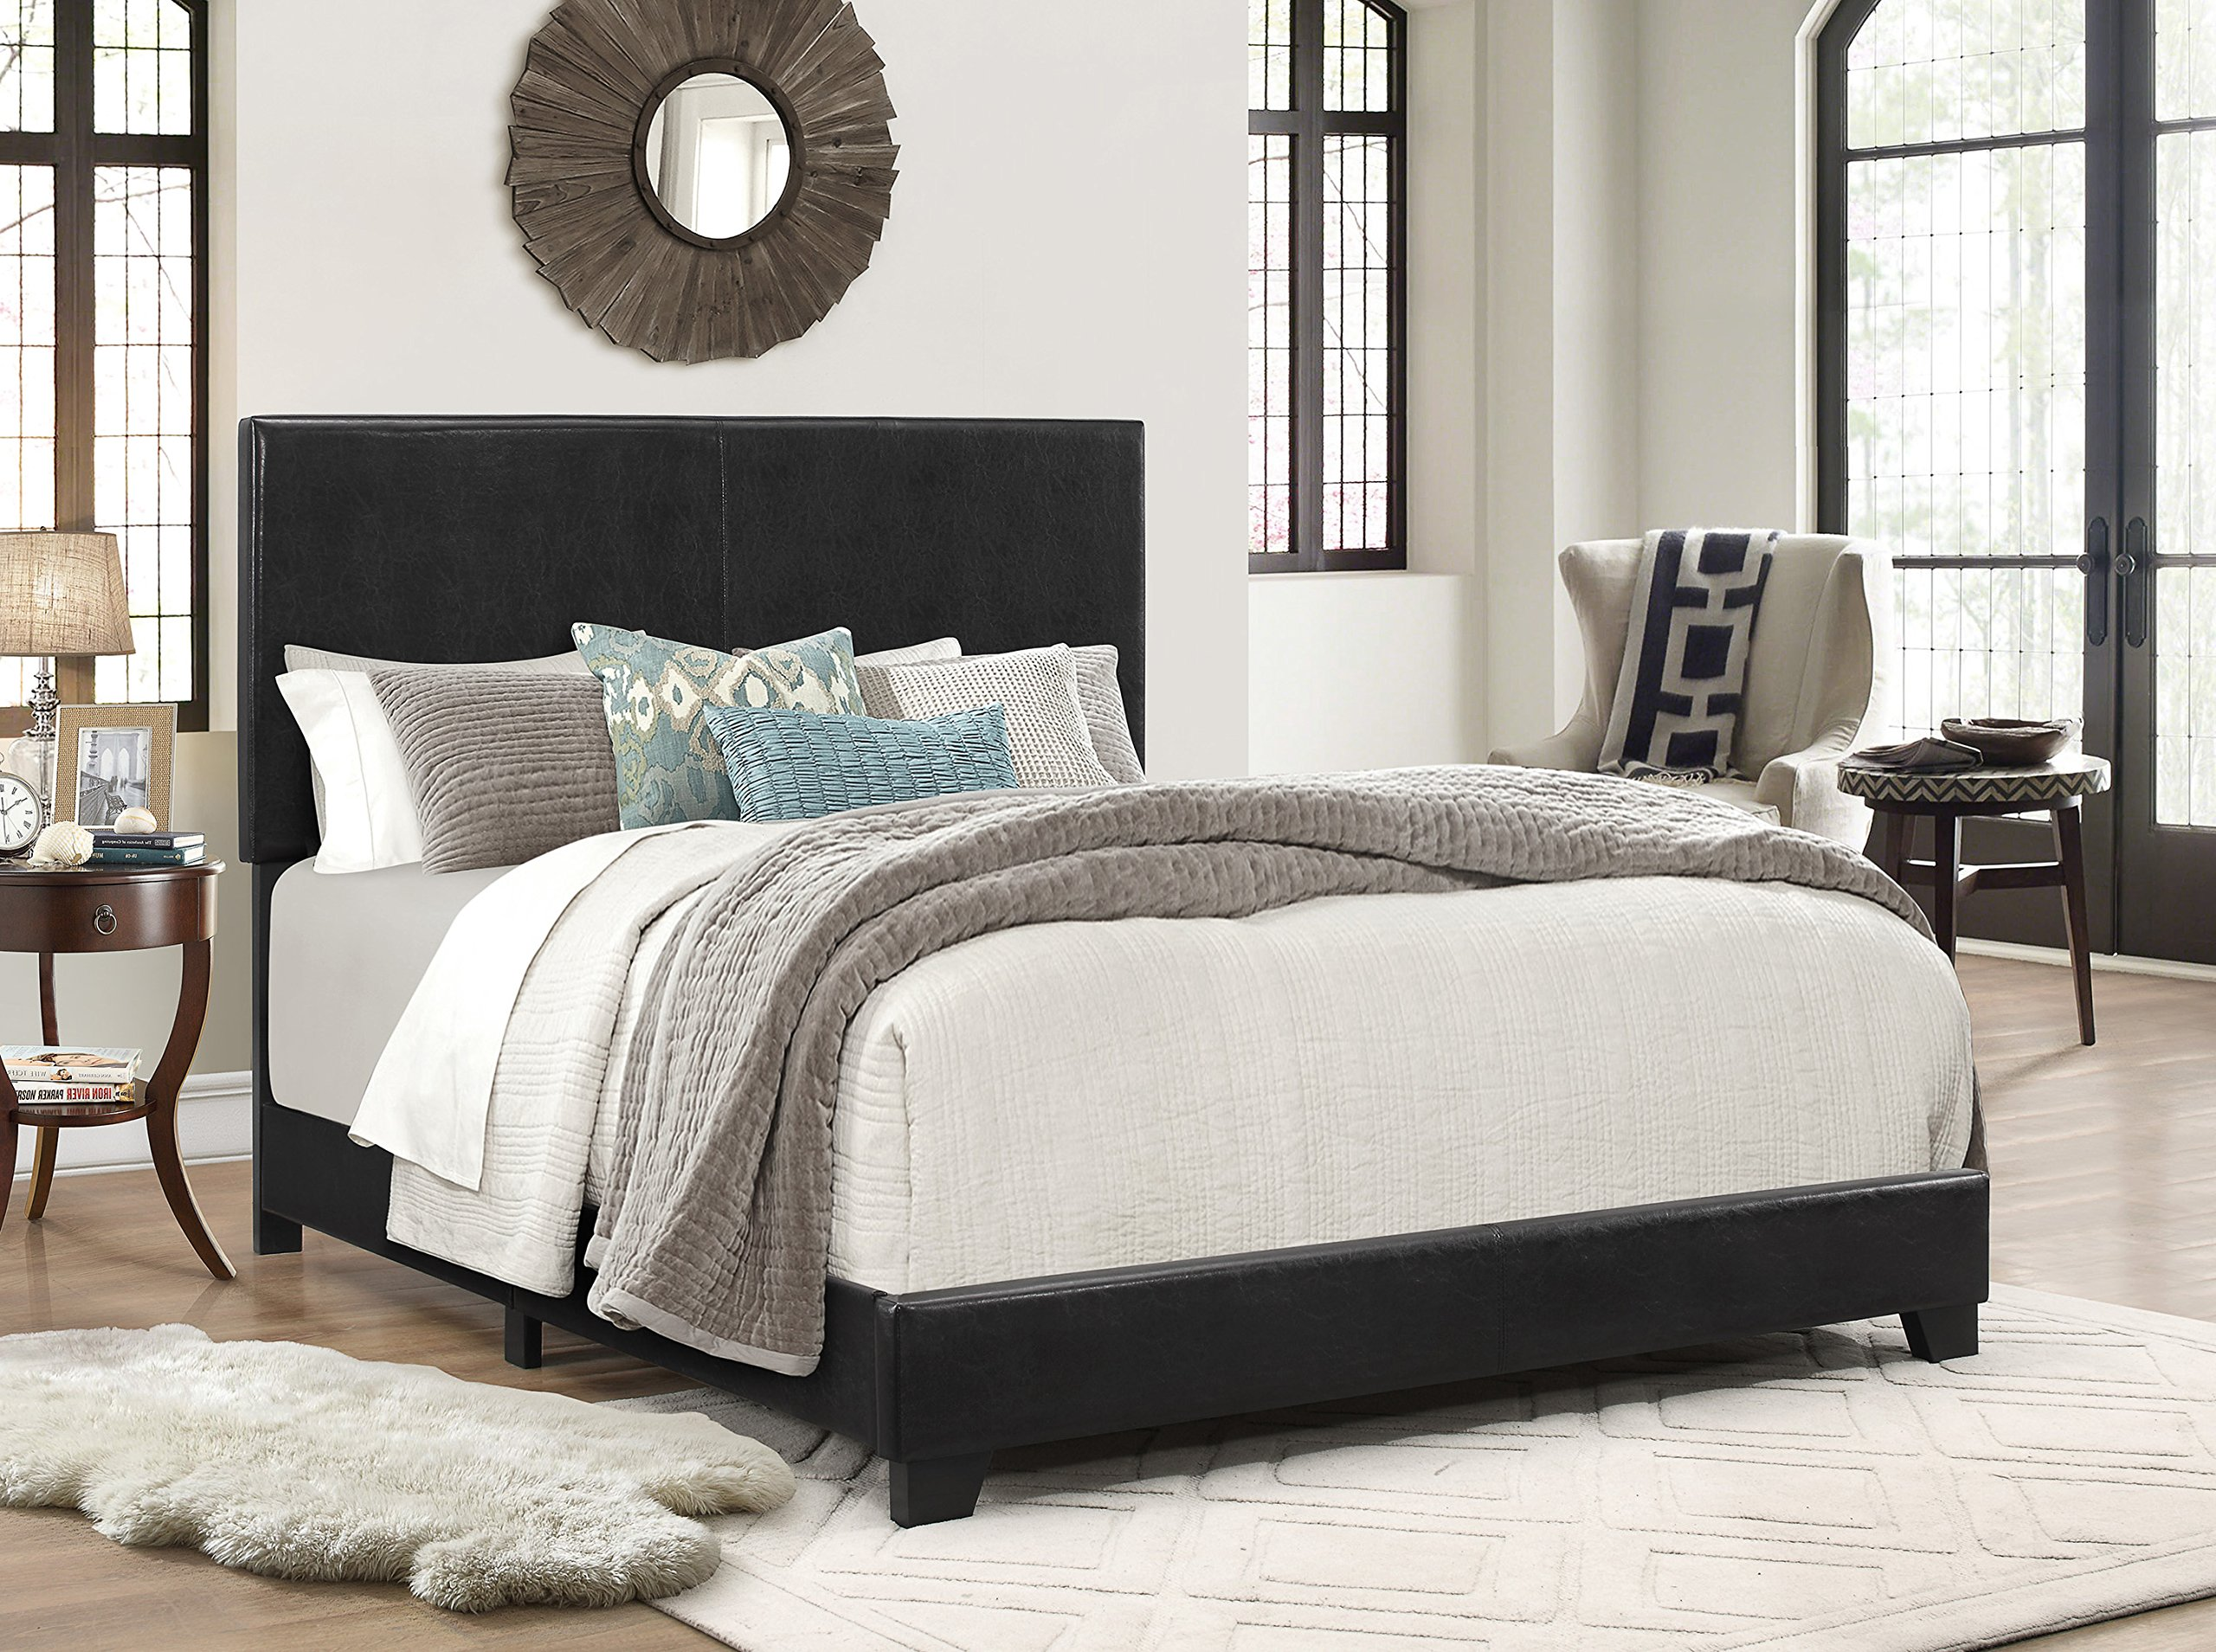 Crown Mark Upholstered Panel Bed in Black, Full by Crown Mark